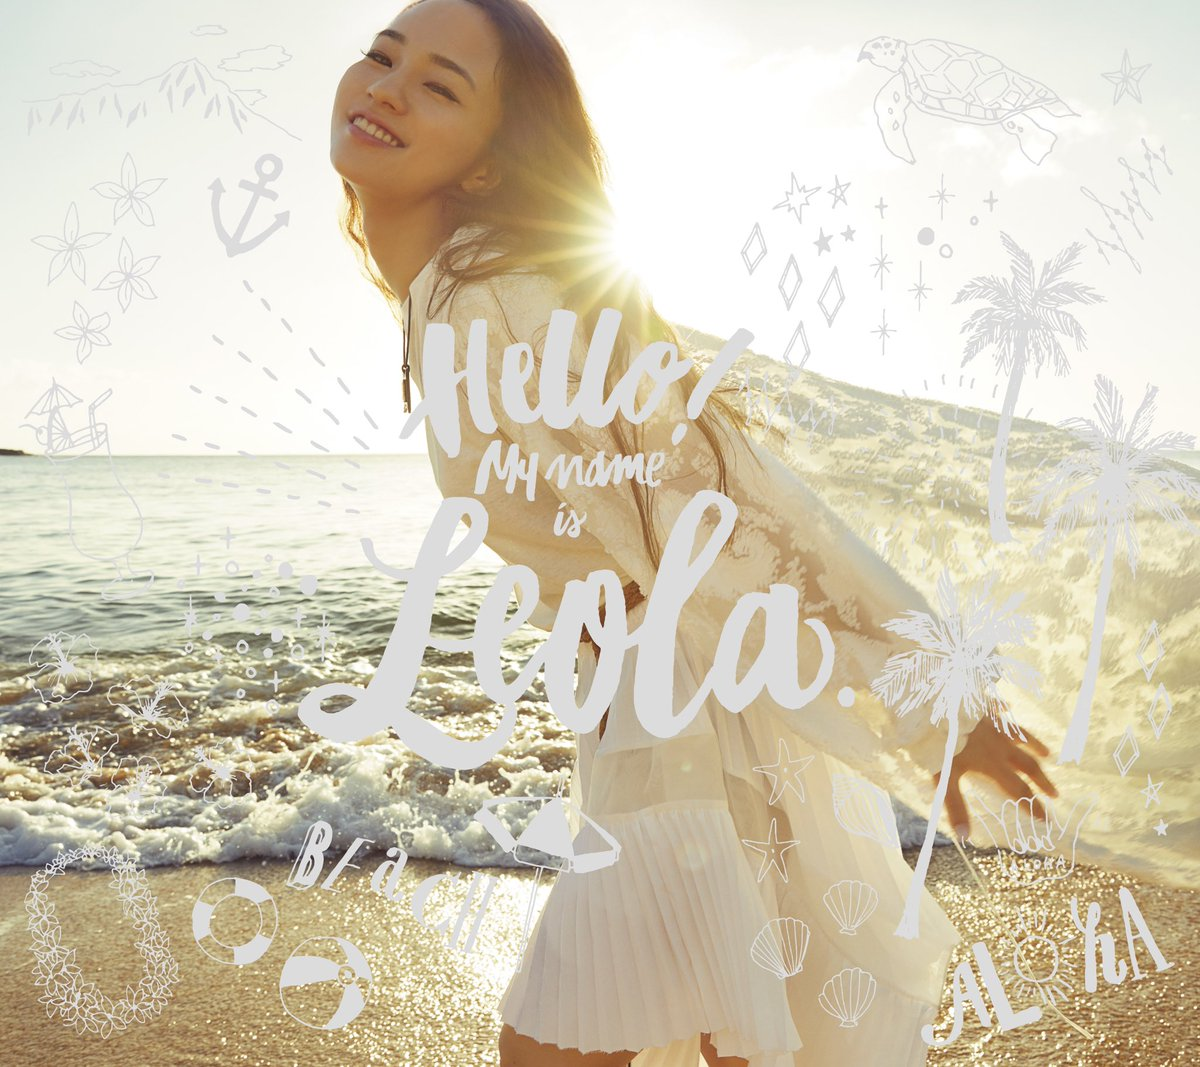 Leola Leola 1st Album「Hello! My name is Leola.」7/12 Release! 配信情報はこちら☞ https:// leola.lnk.to/hellomynameisleolaTA …